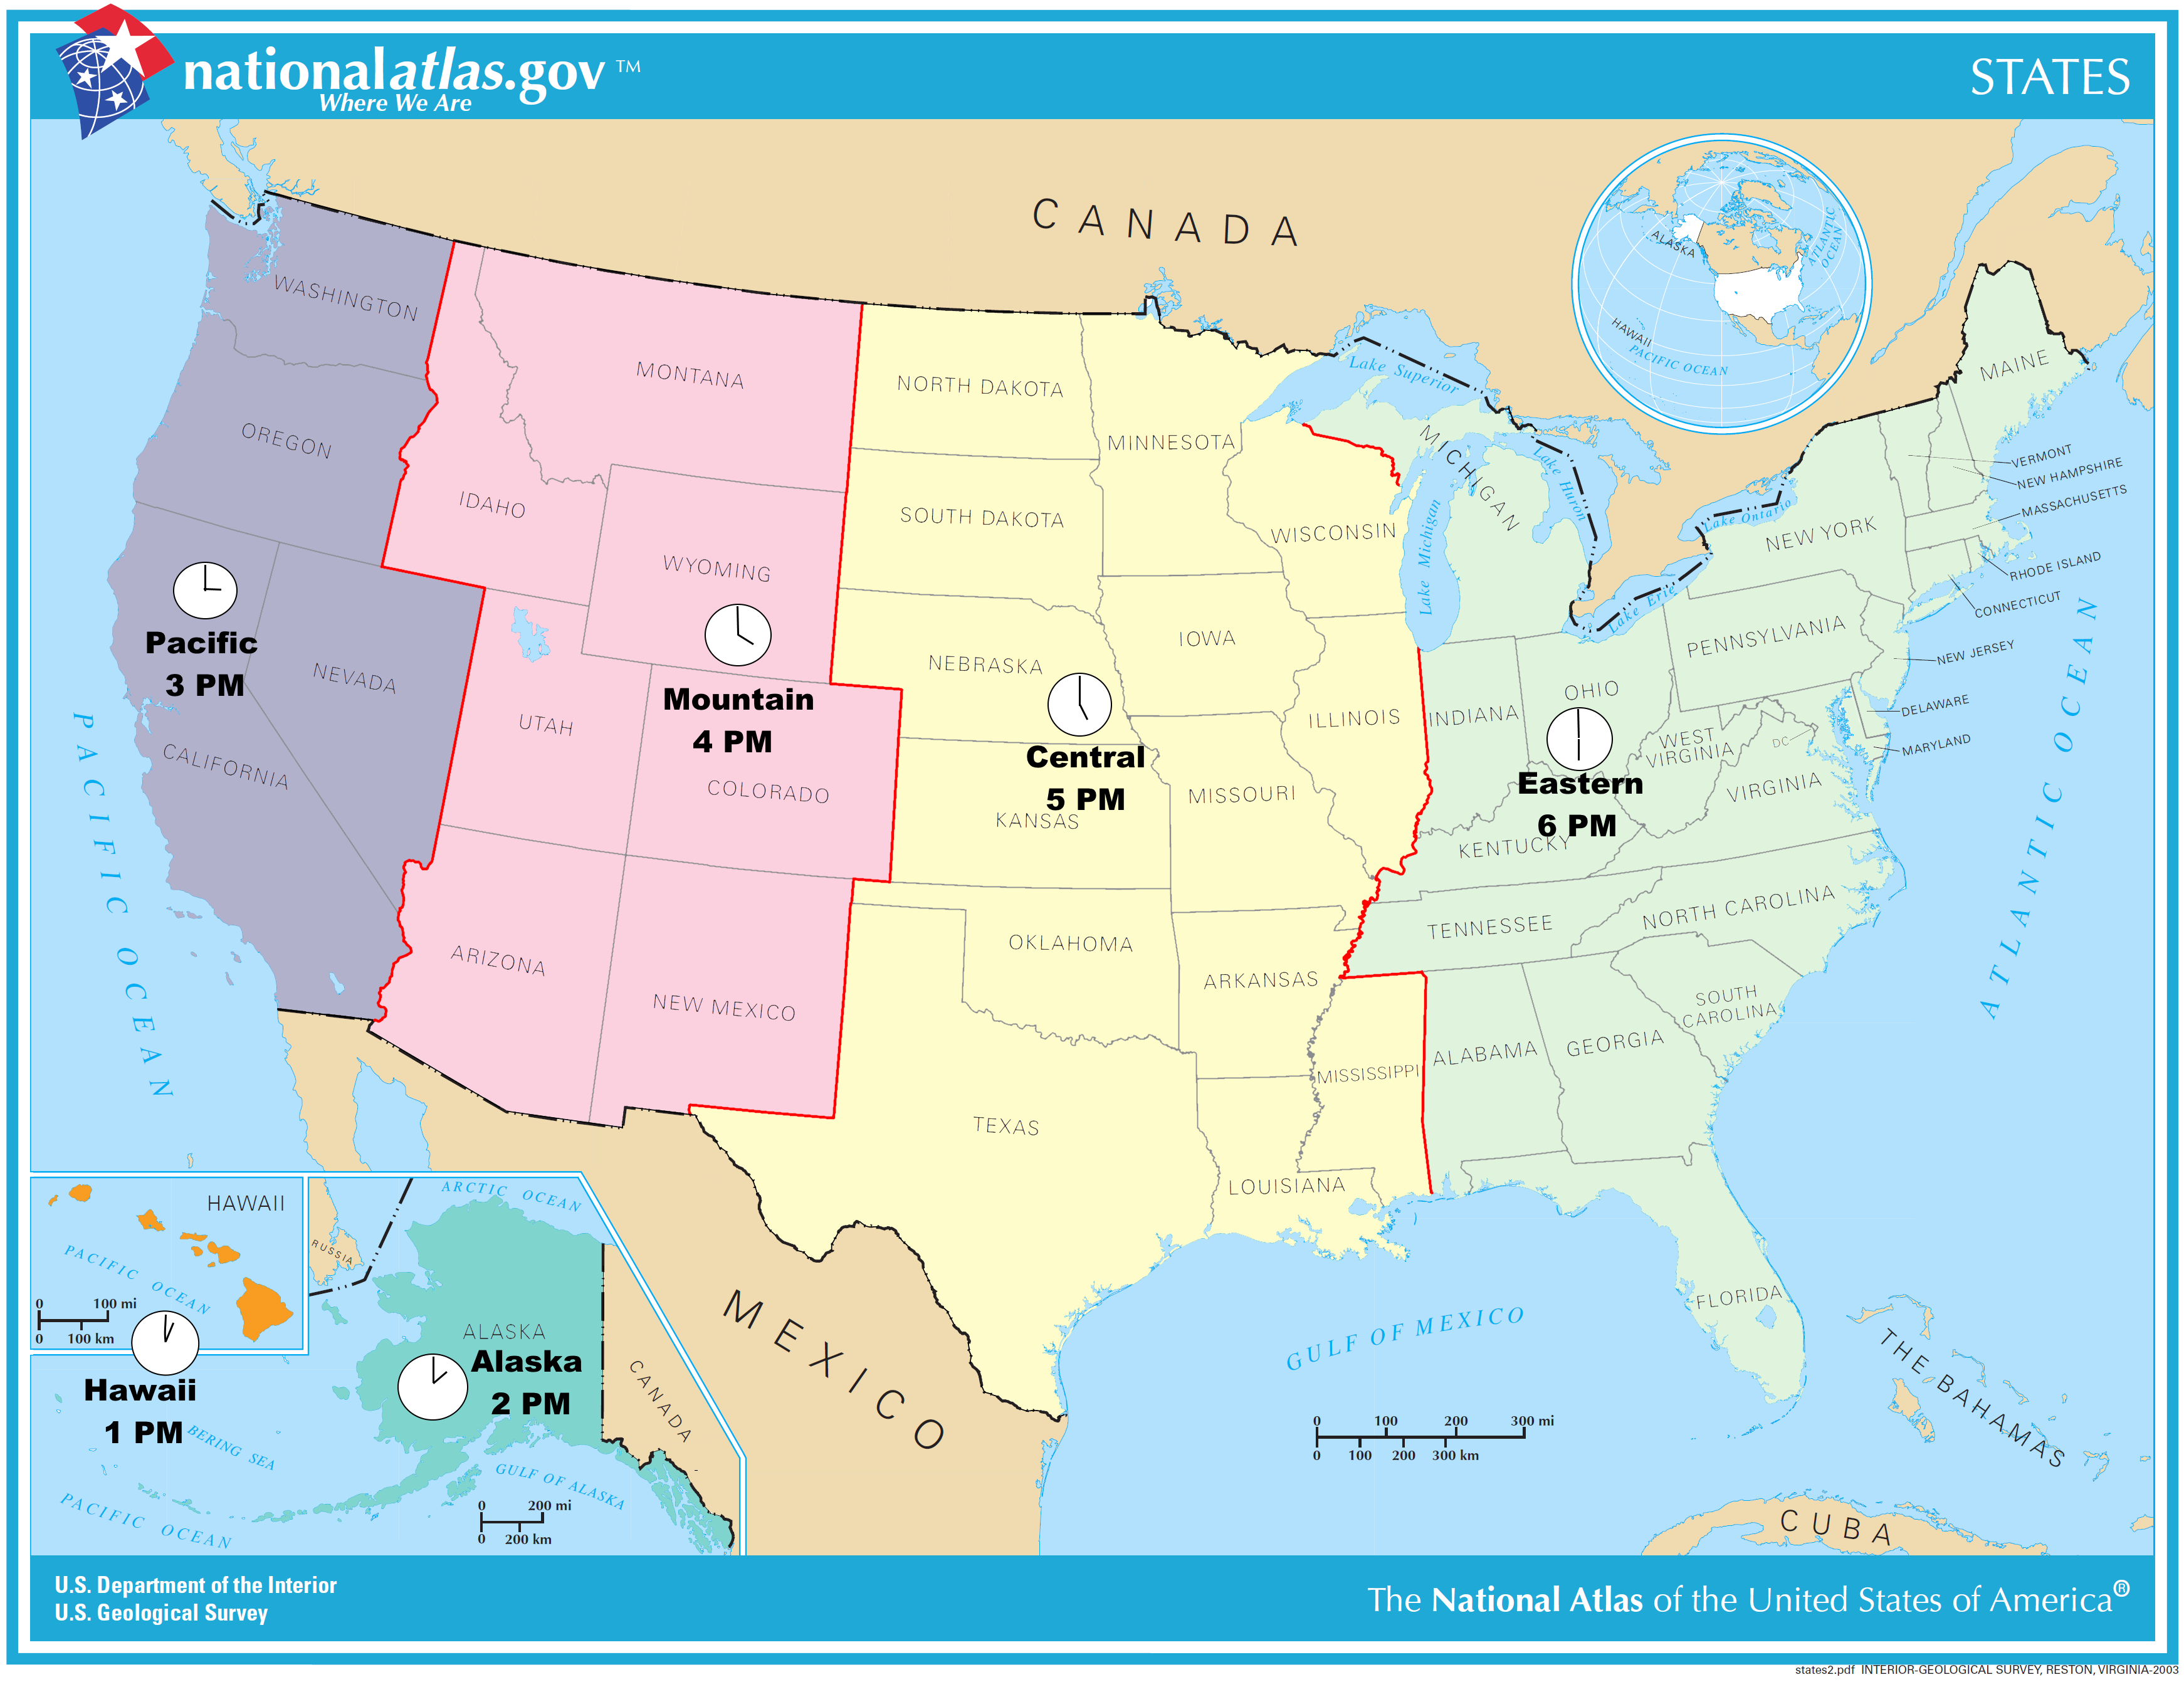 Proposed Simplified Time Zone Map Of The United States